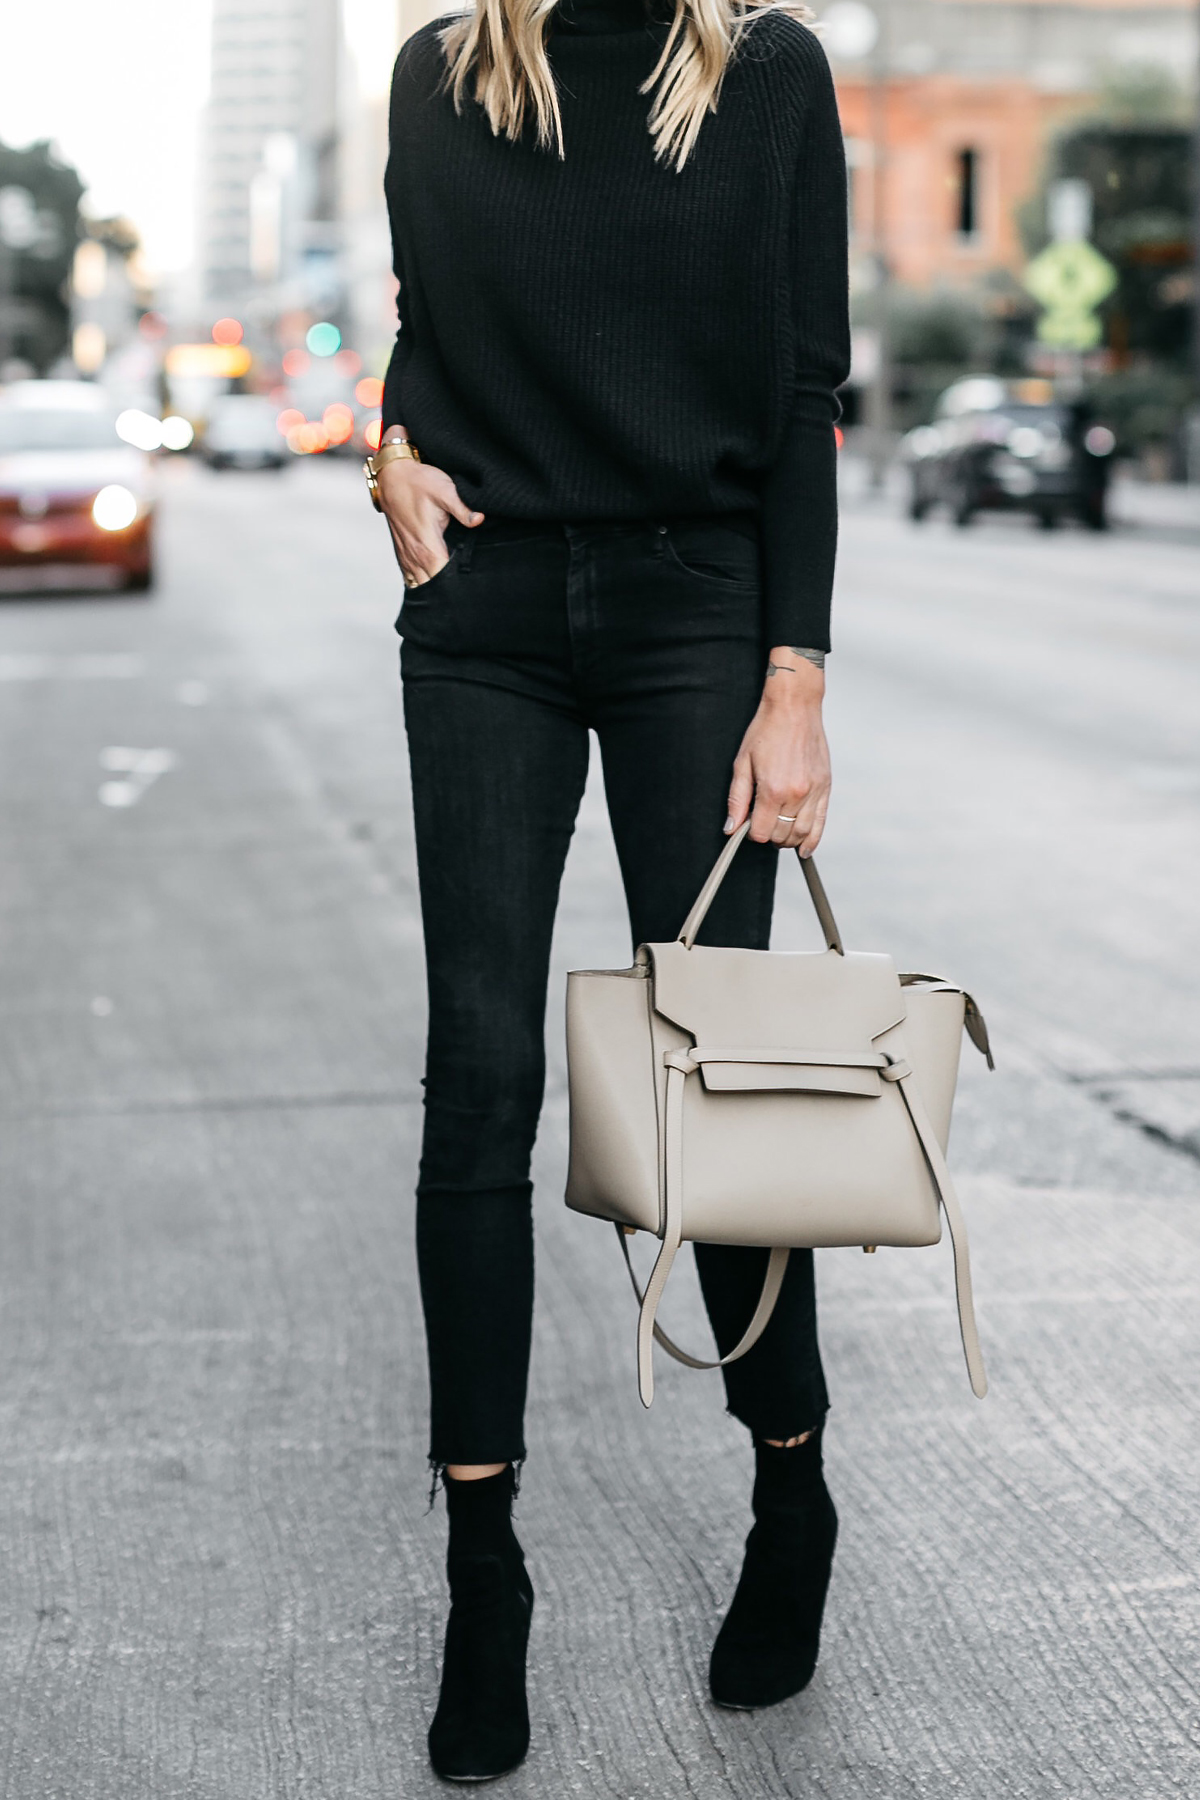 Club Monaco Black Cashmere Sweater Black Skinny Jeans Black Booties Celine Mini Belt Bag Fashion Jackson Dallas Blogger Fashion Blogger Street Style